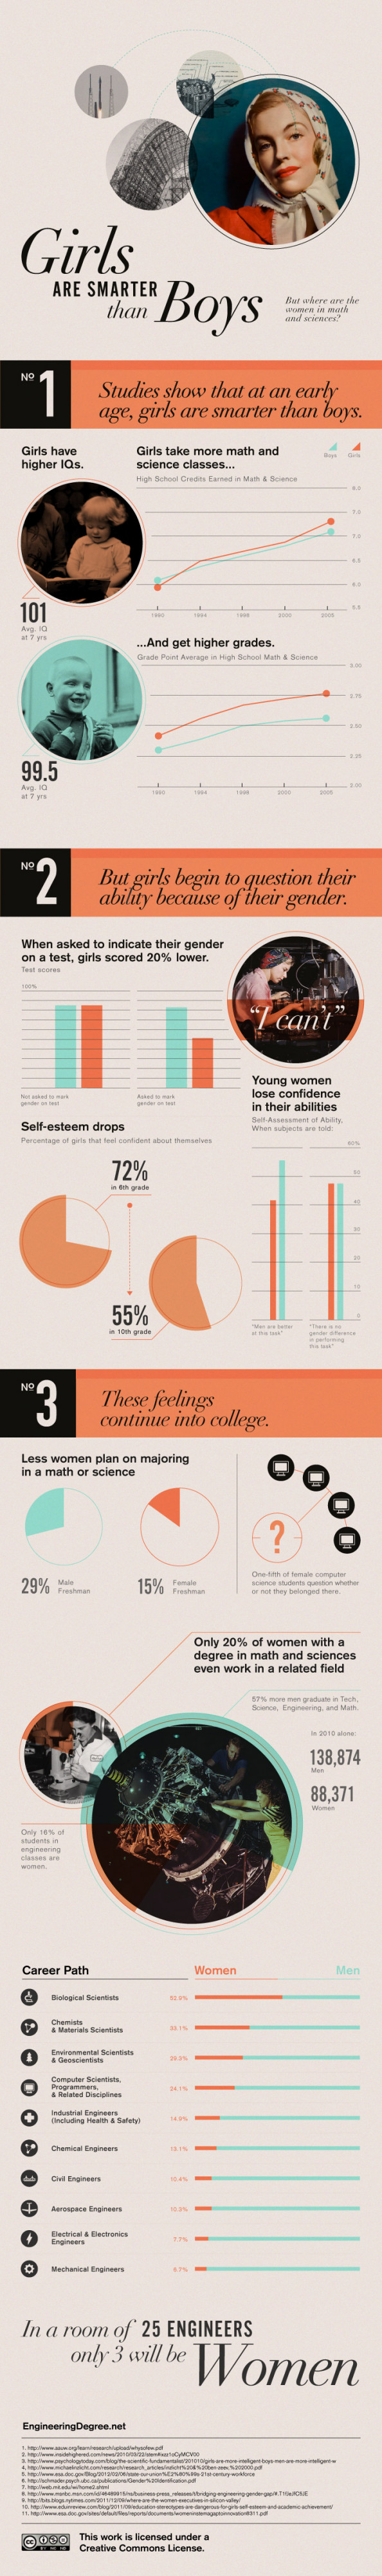 Girls are Smarter than Boys Infographic